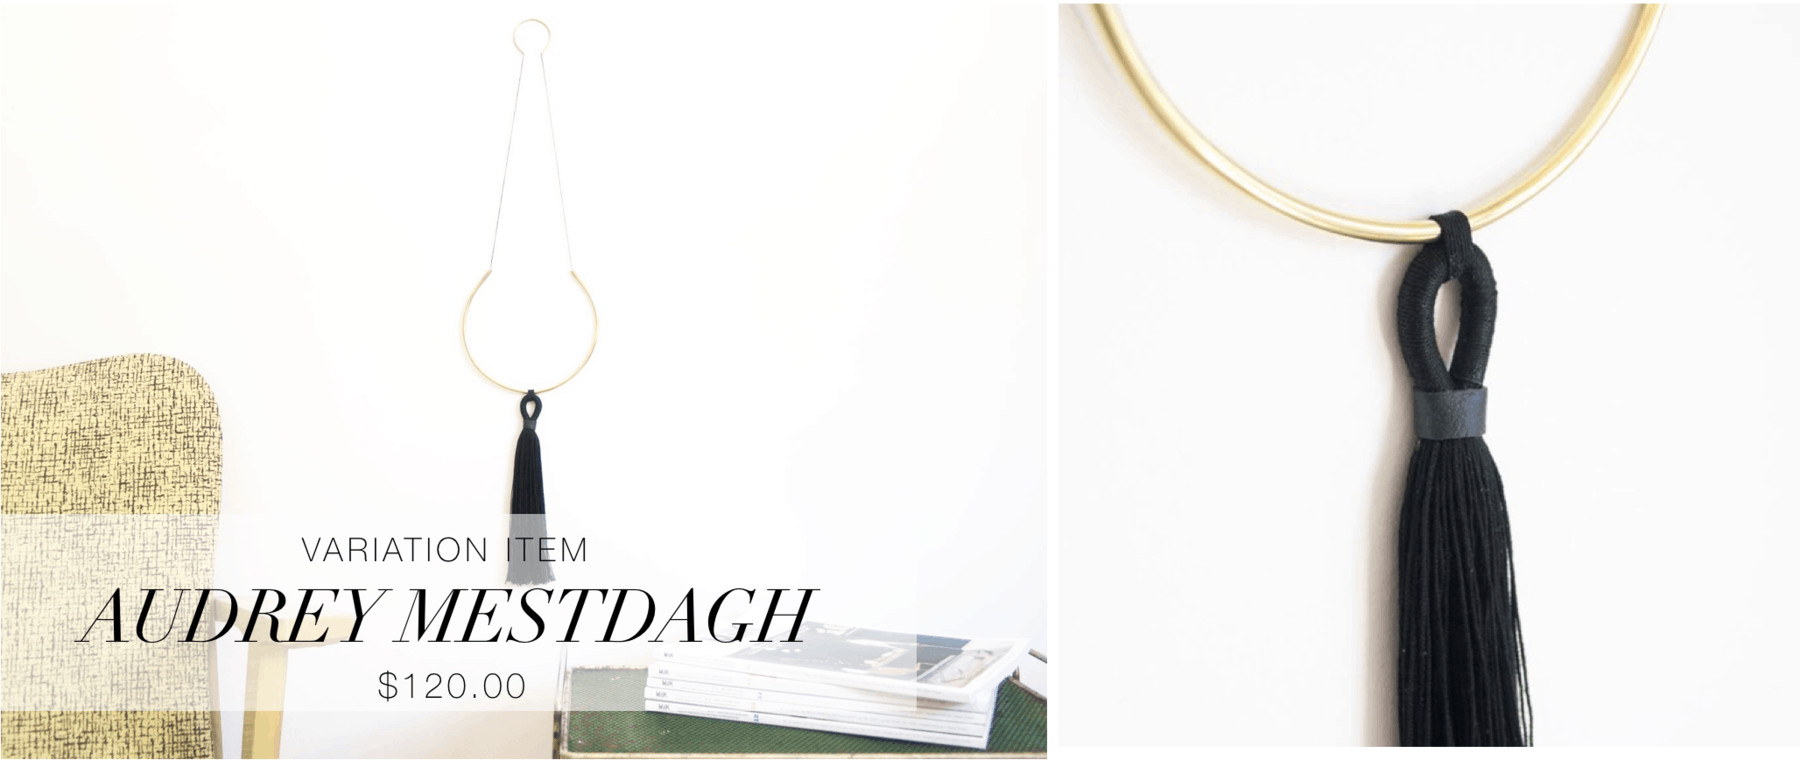 OuiPlease Audrey Metdagh French Luxury Subscription Box